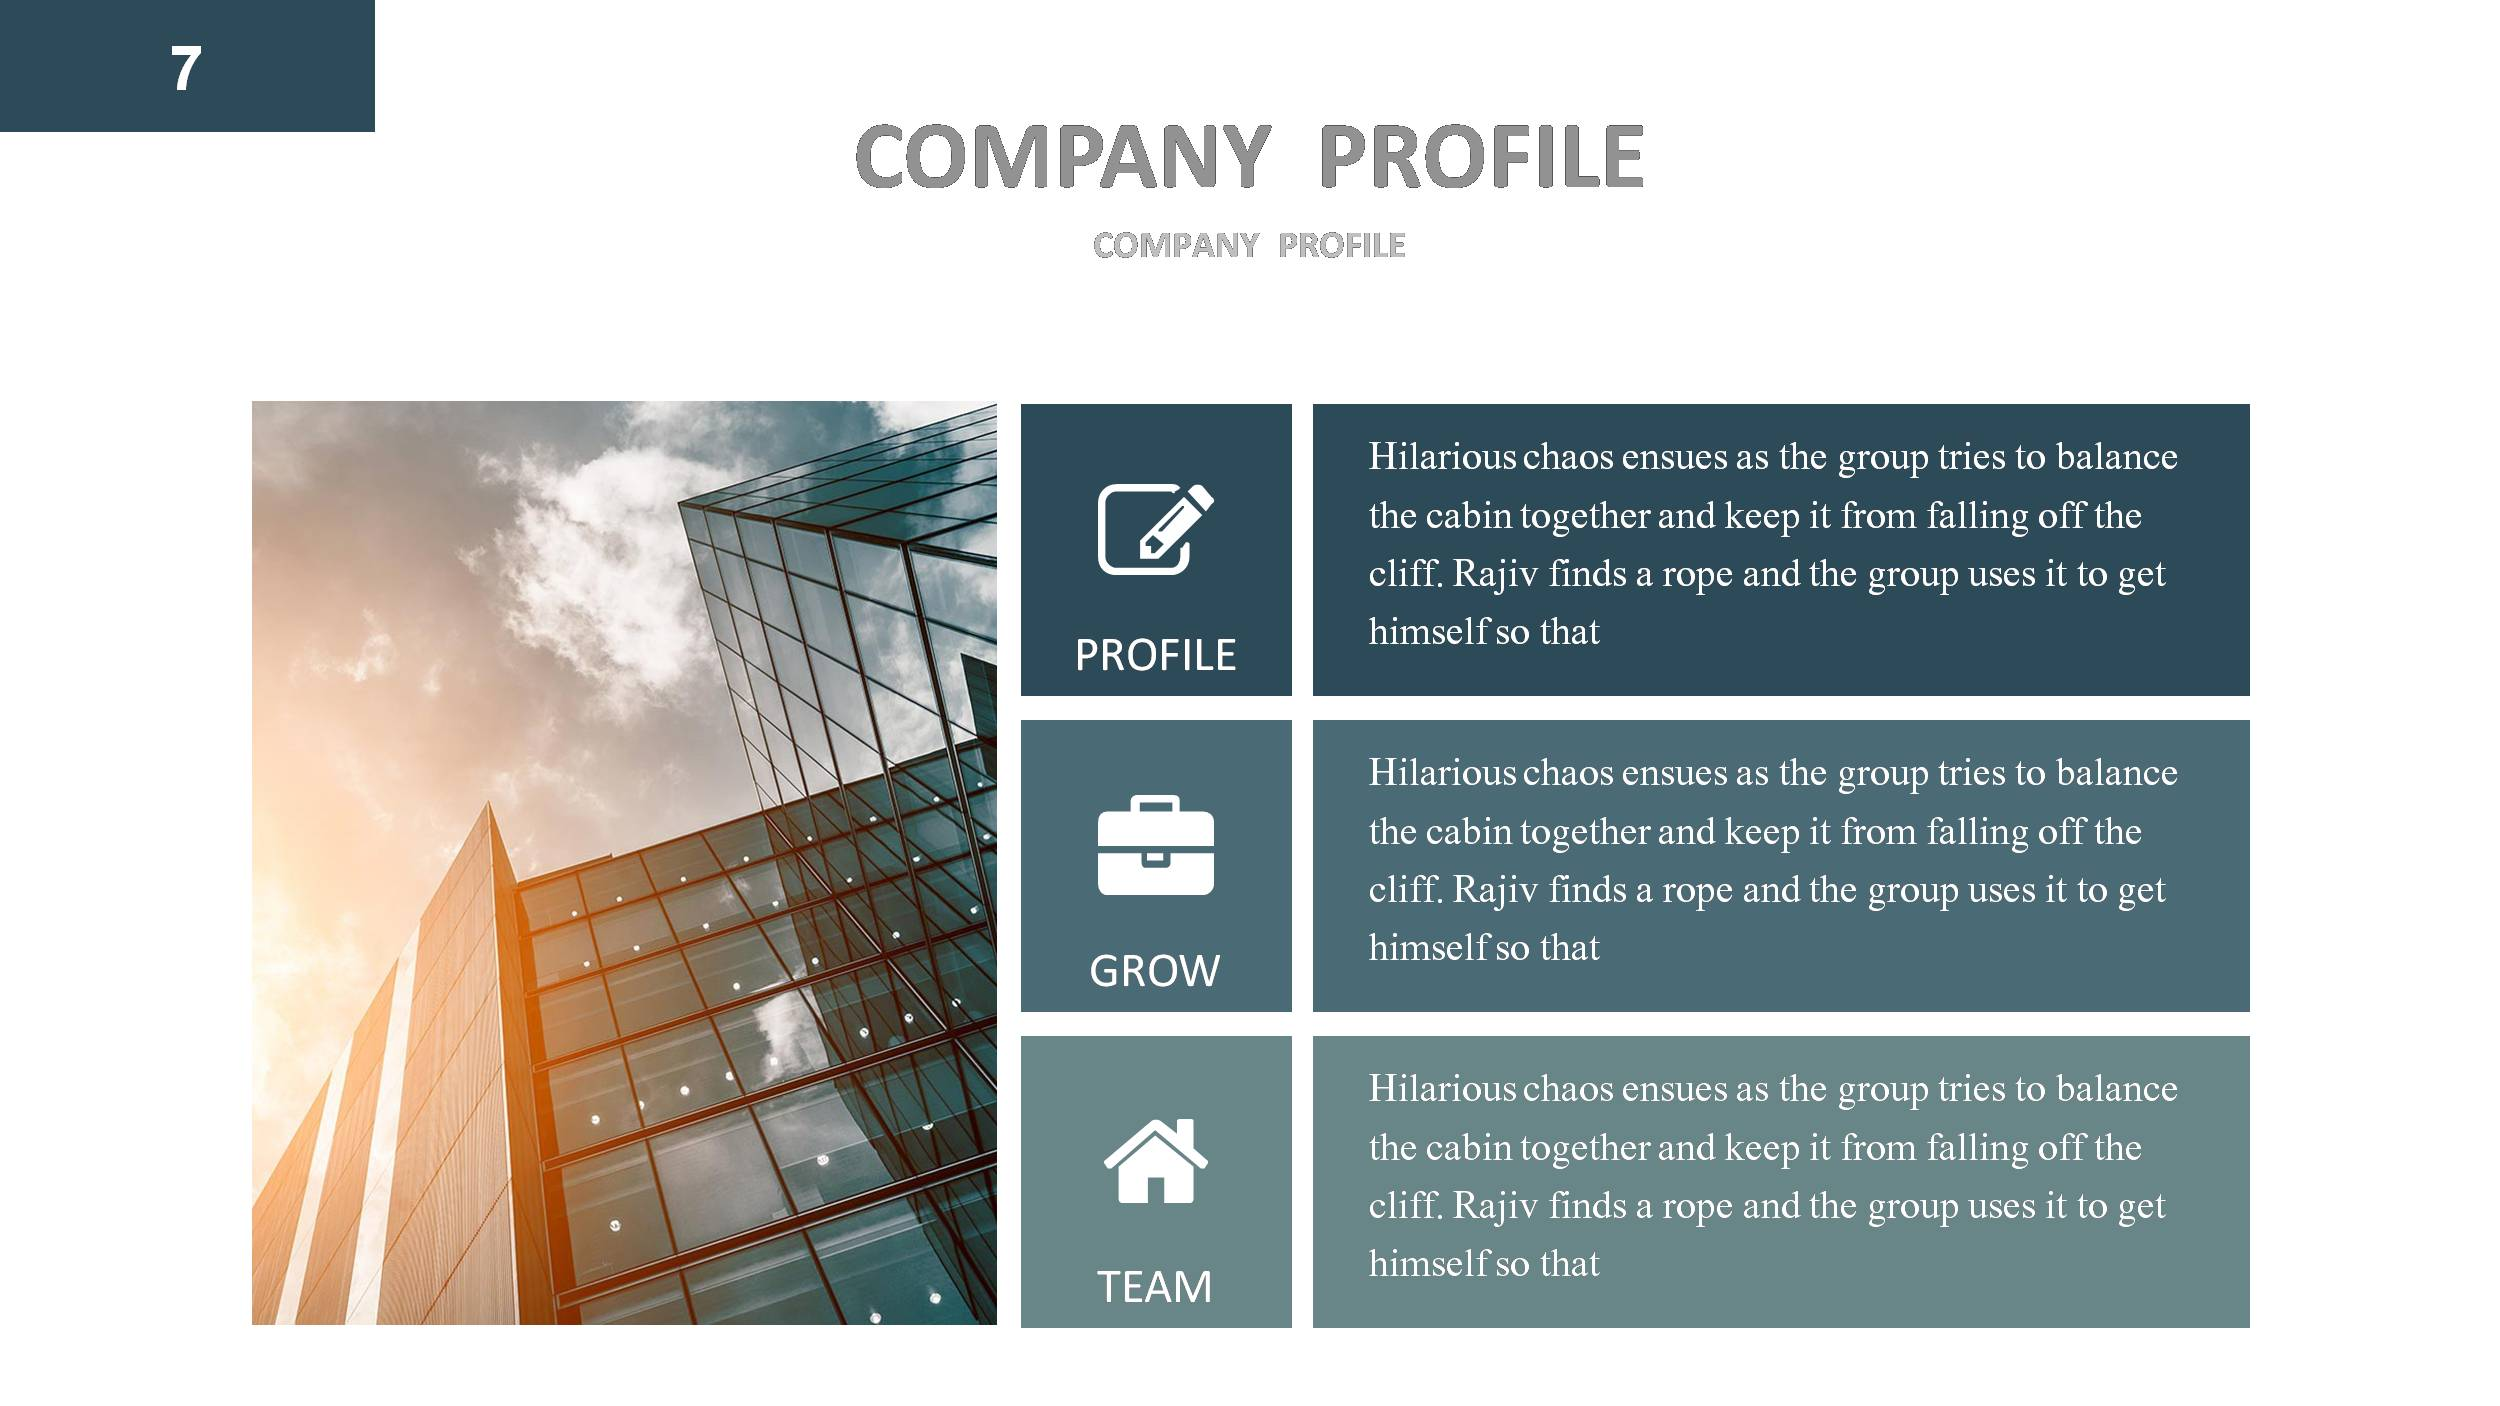 Company Profile Powerpoint Template By Jafardesigns Company Profile Powerpoint Presentation Template By